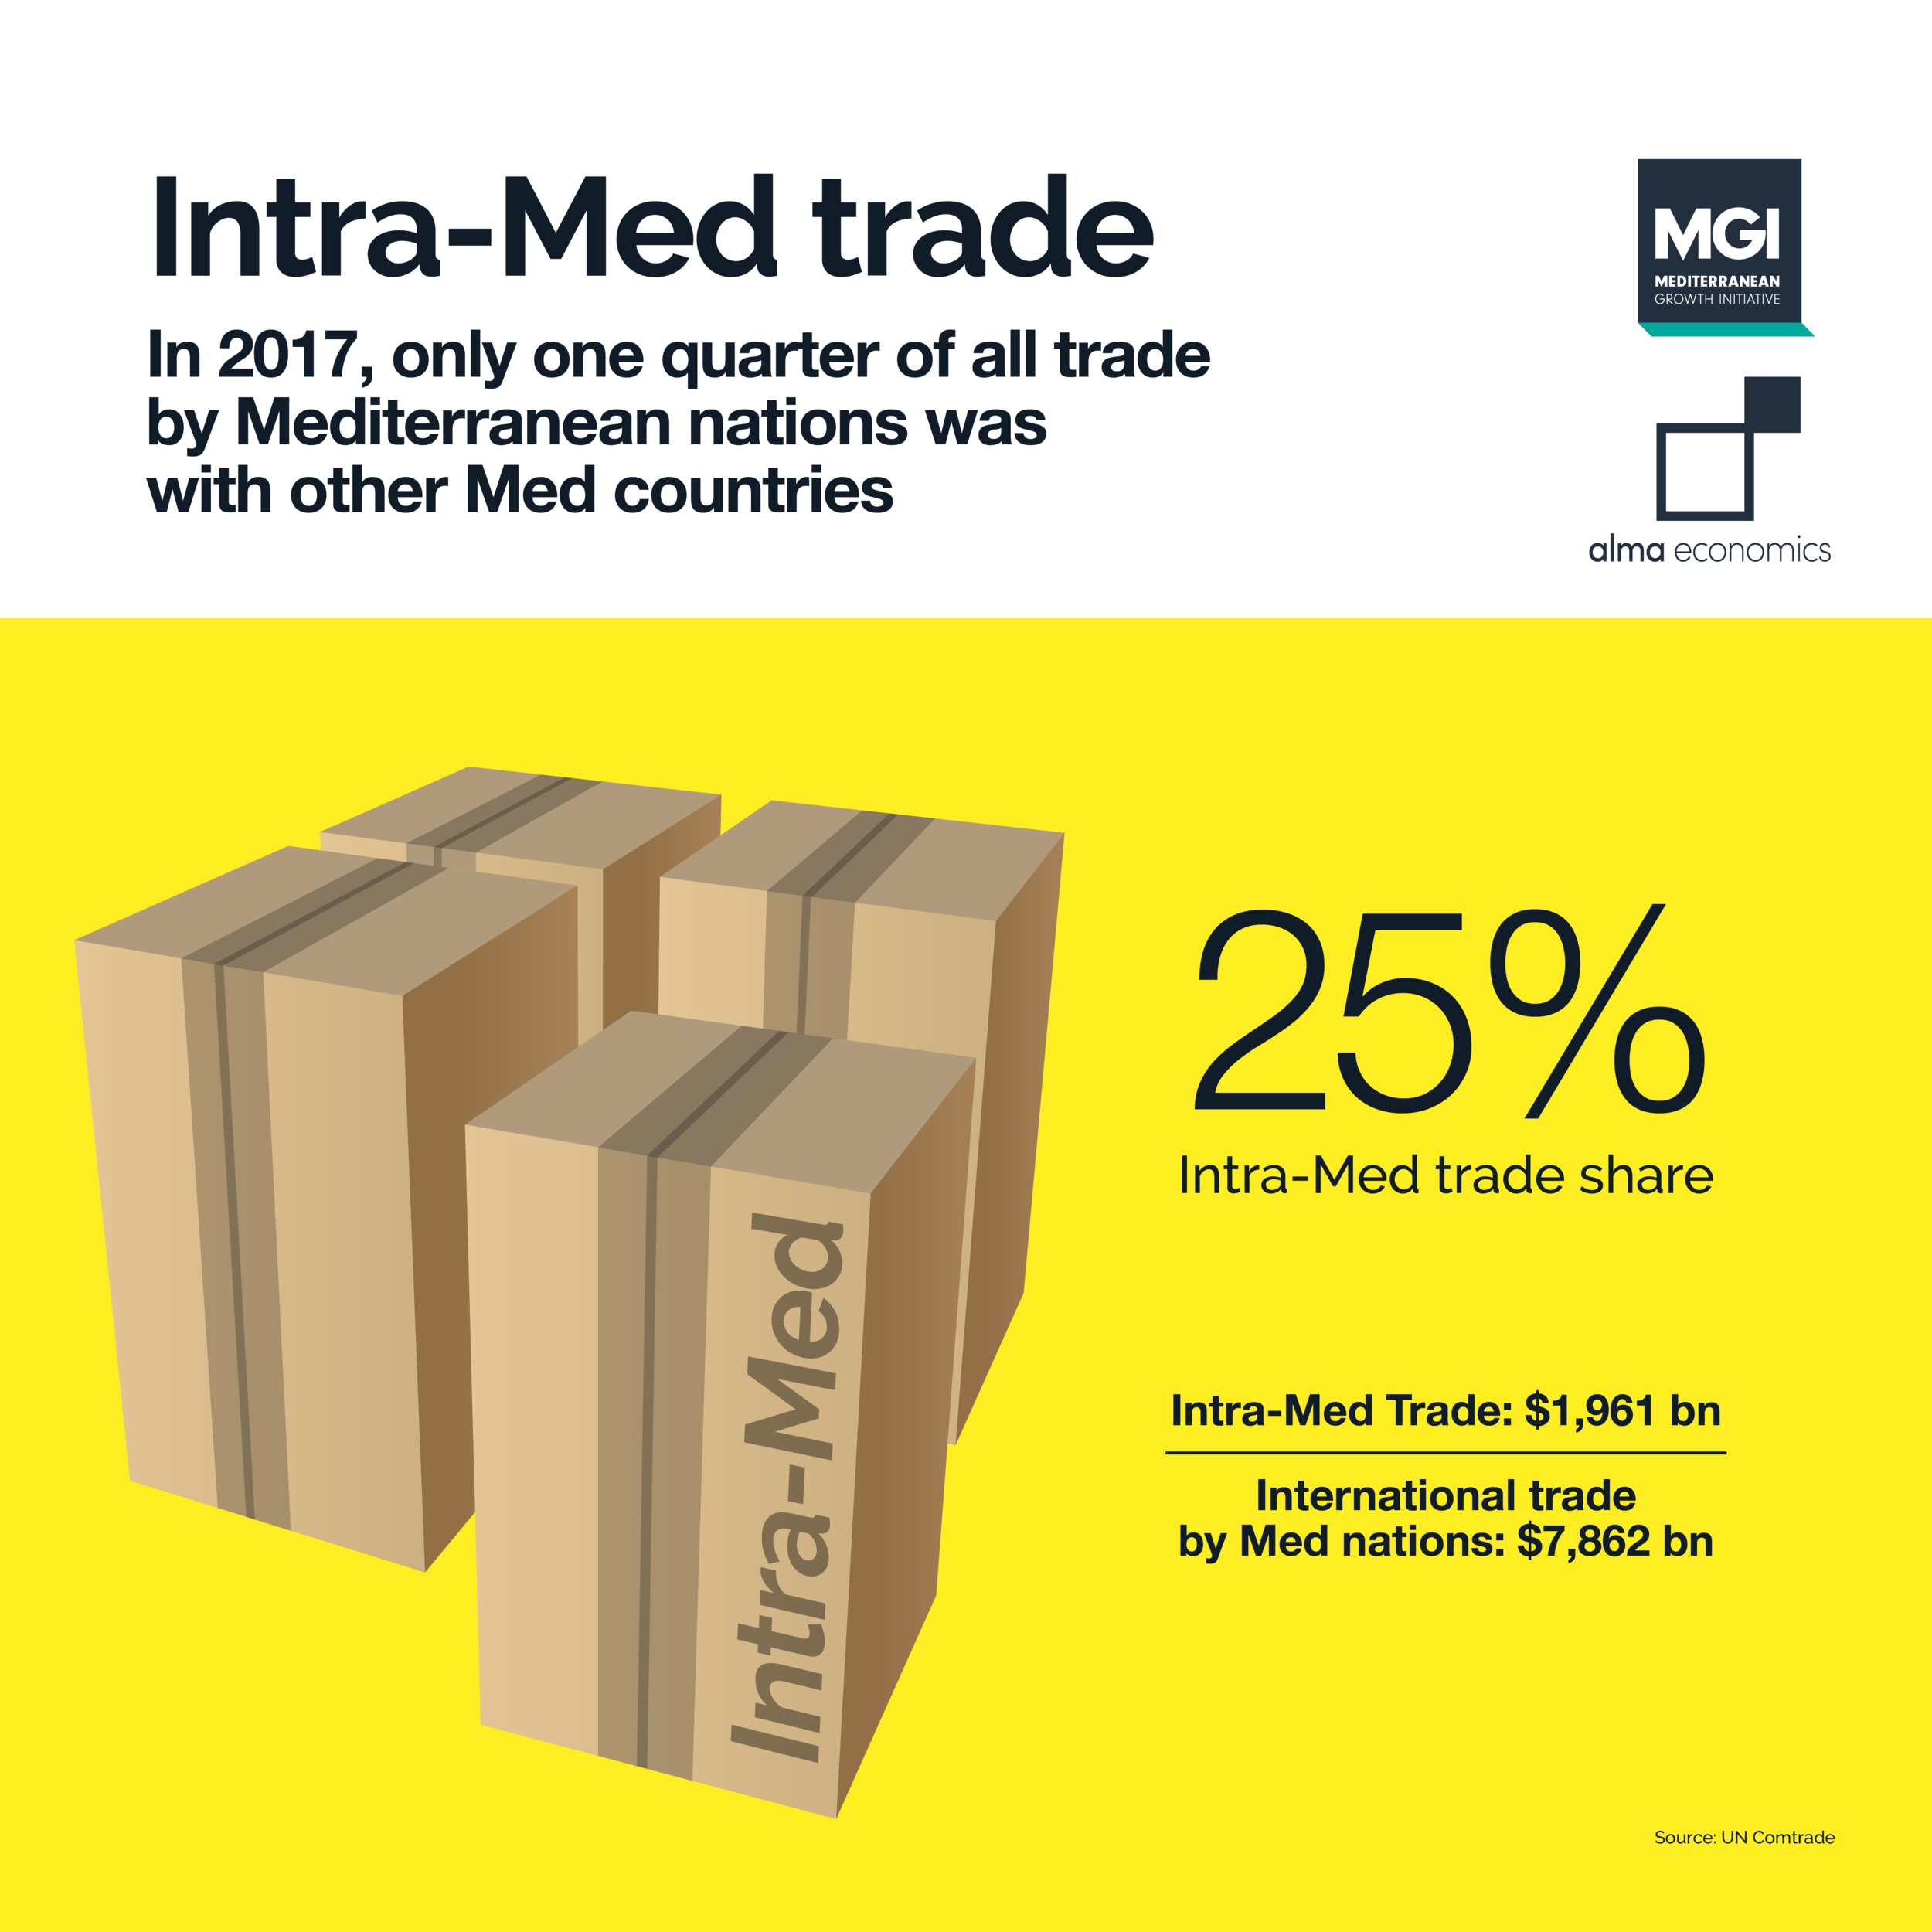 Intra-Med trade - There is substantial scope for expansion in intra-Med trade ties in the future